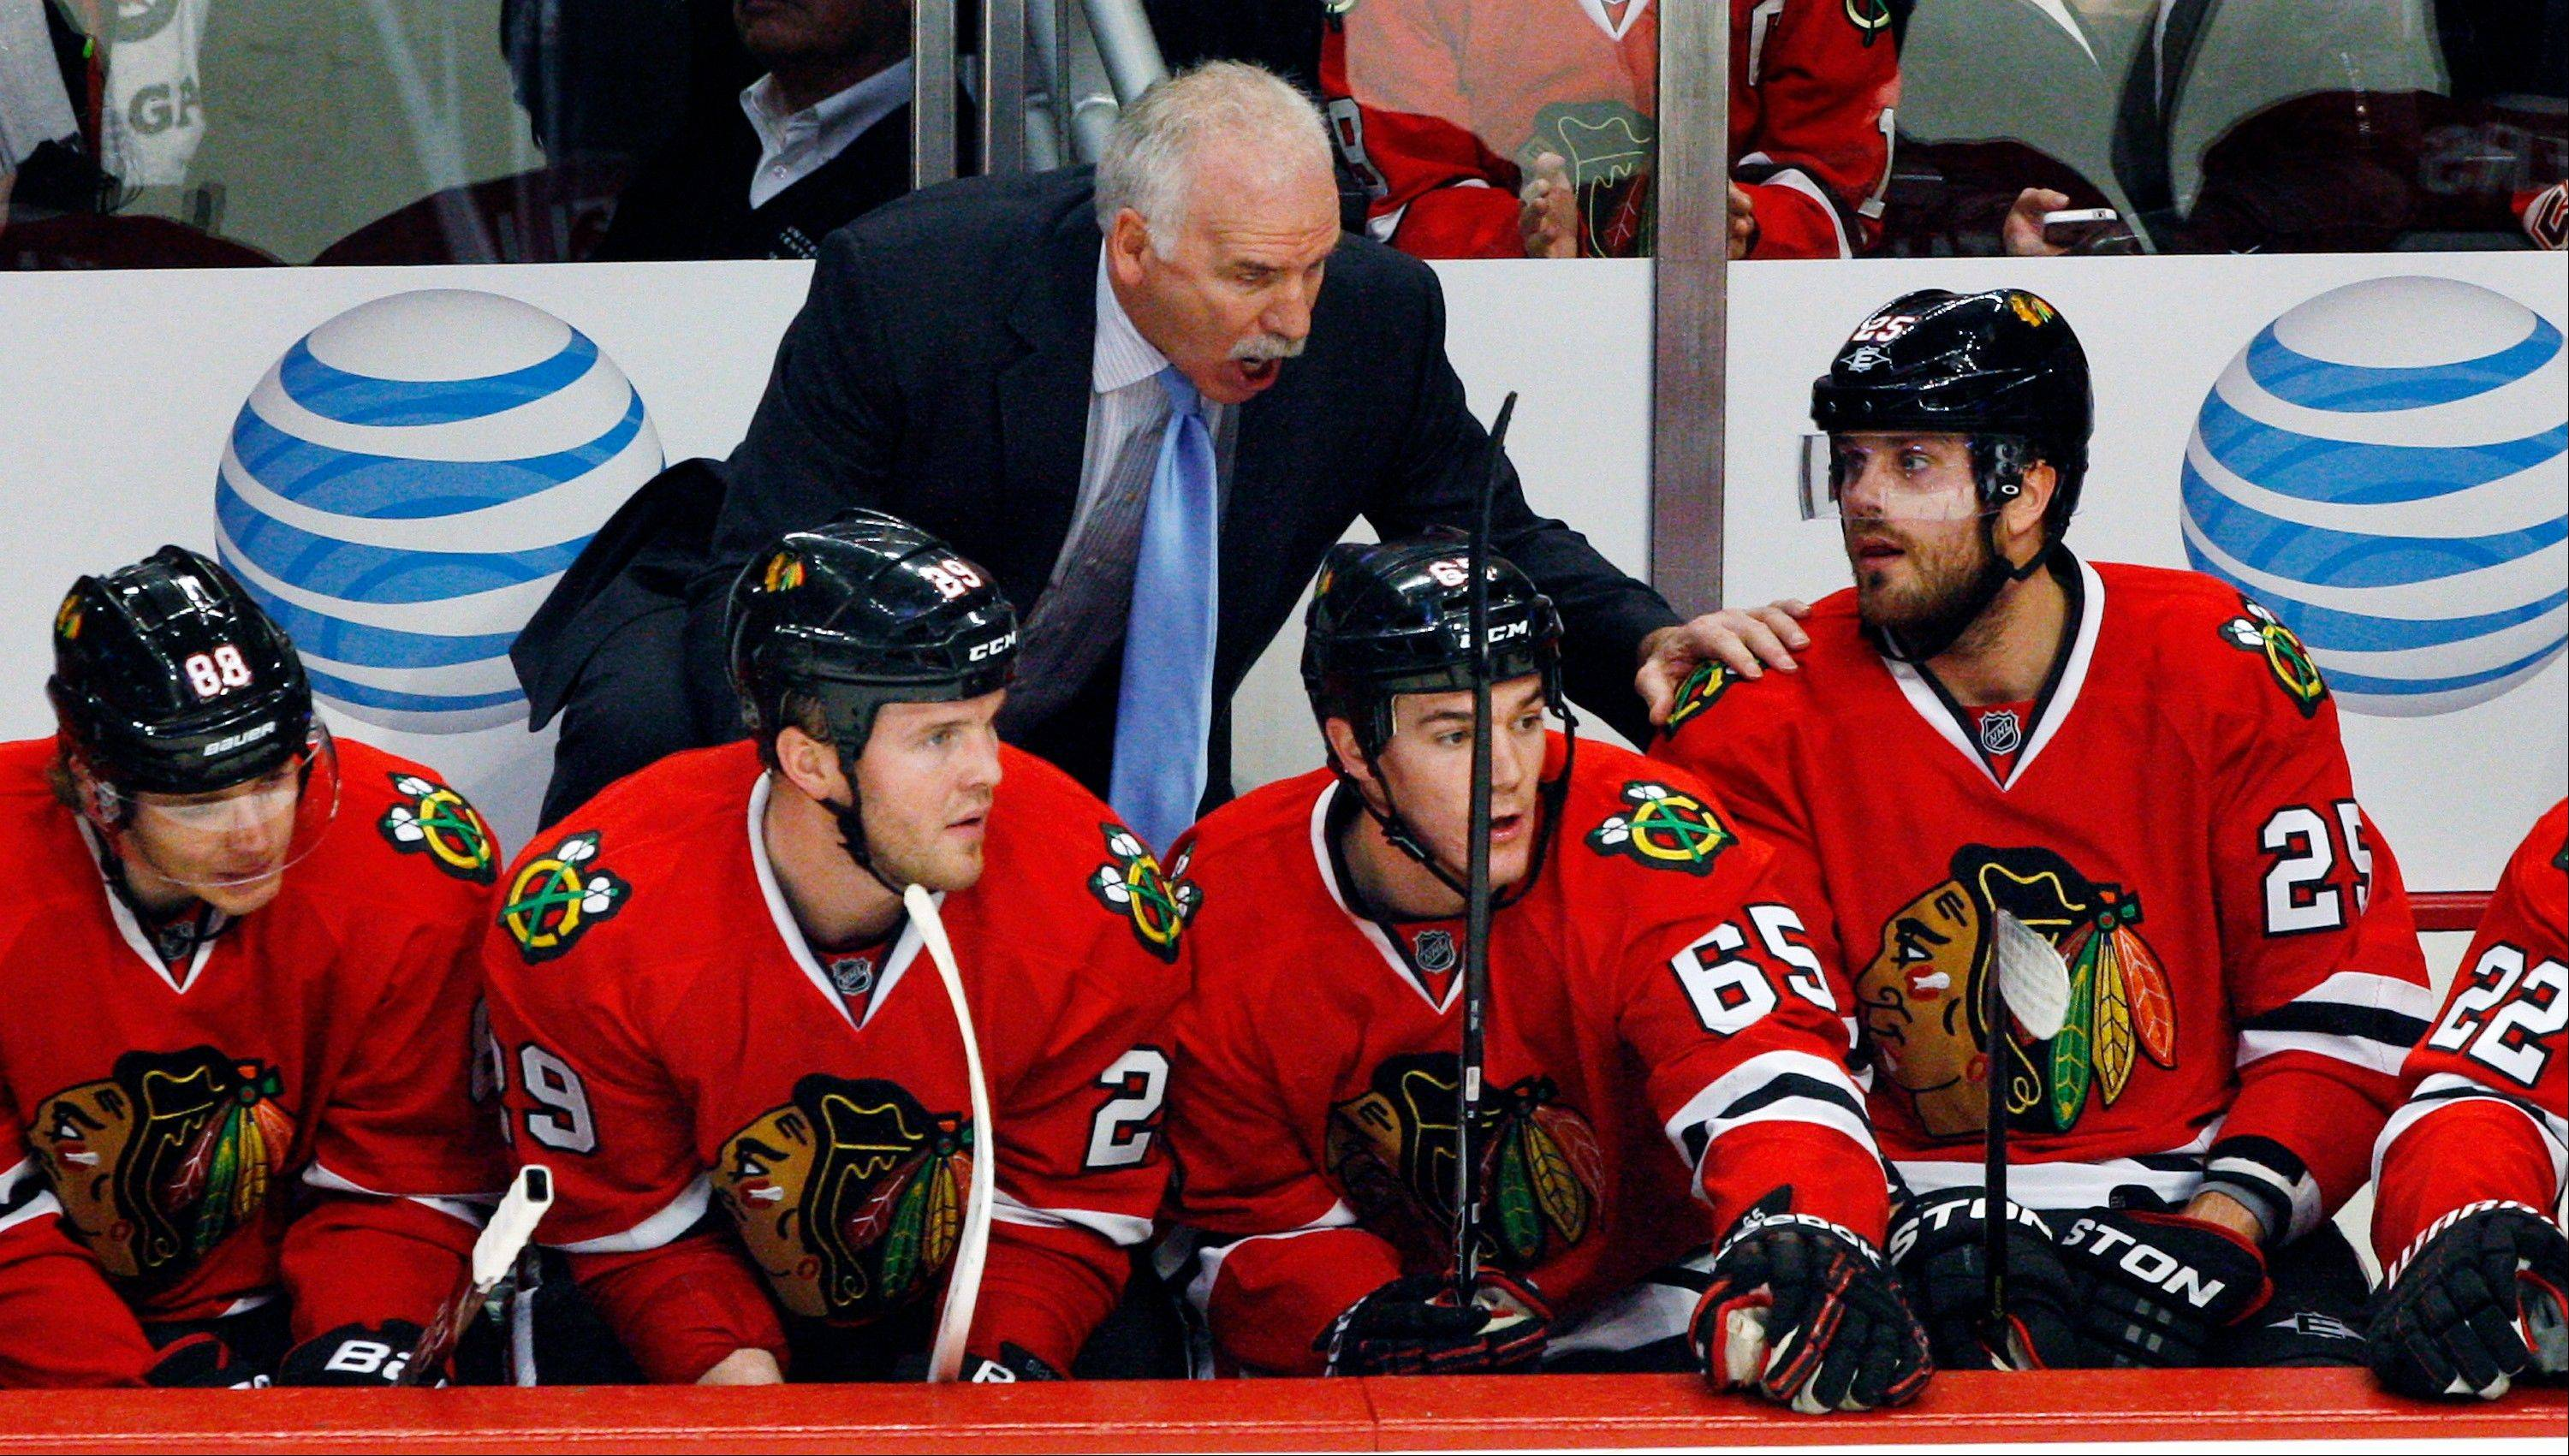 Through six games, Blackhawks coach Joel Quenneville has made all the right moves and found the right minutes for his players. The Hawks will try to extend their strong start to 7-0 Wednesday night at Minnesota.